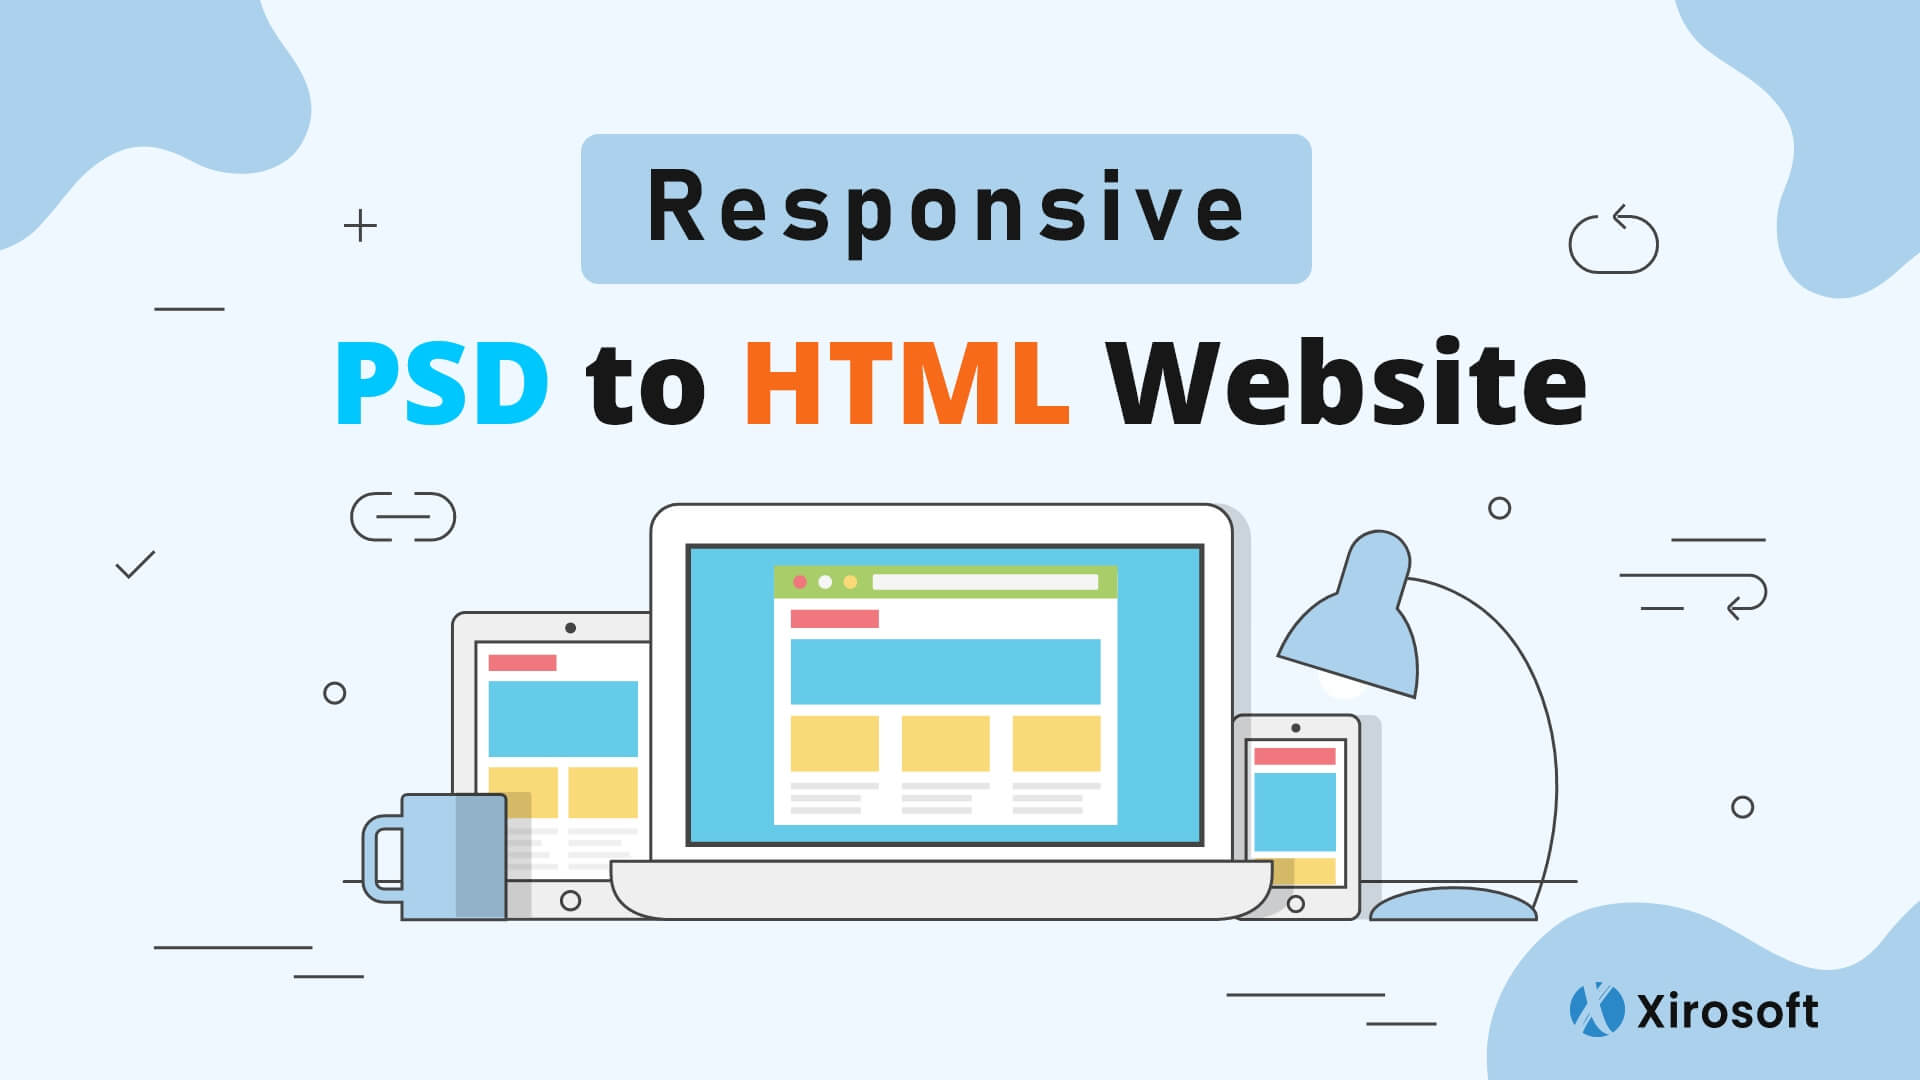 How to Convert PSD to HTML: Step by Step Tutorial